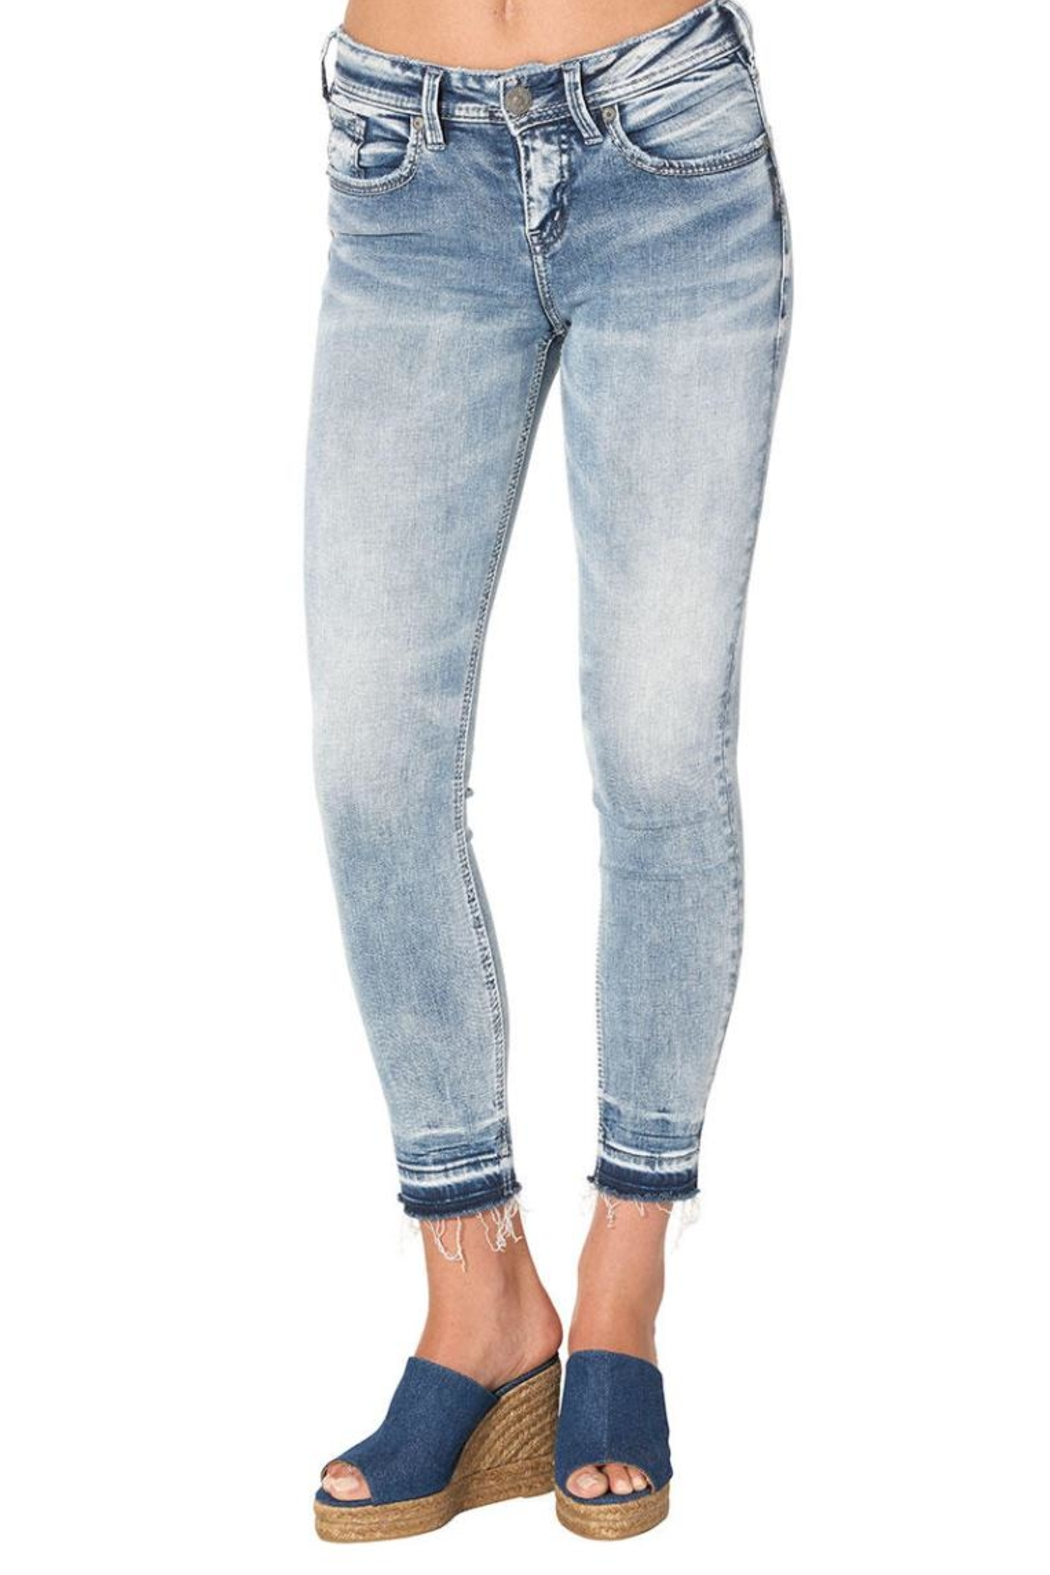 Silver Jeans Co. Avery Ankle Skinny - Main Image